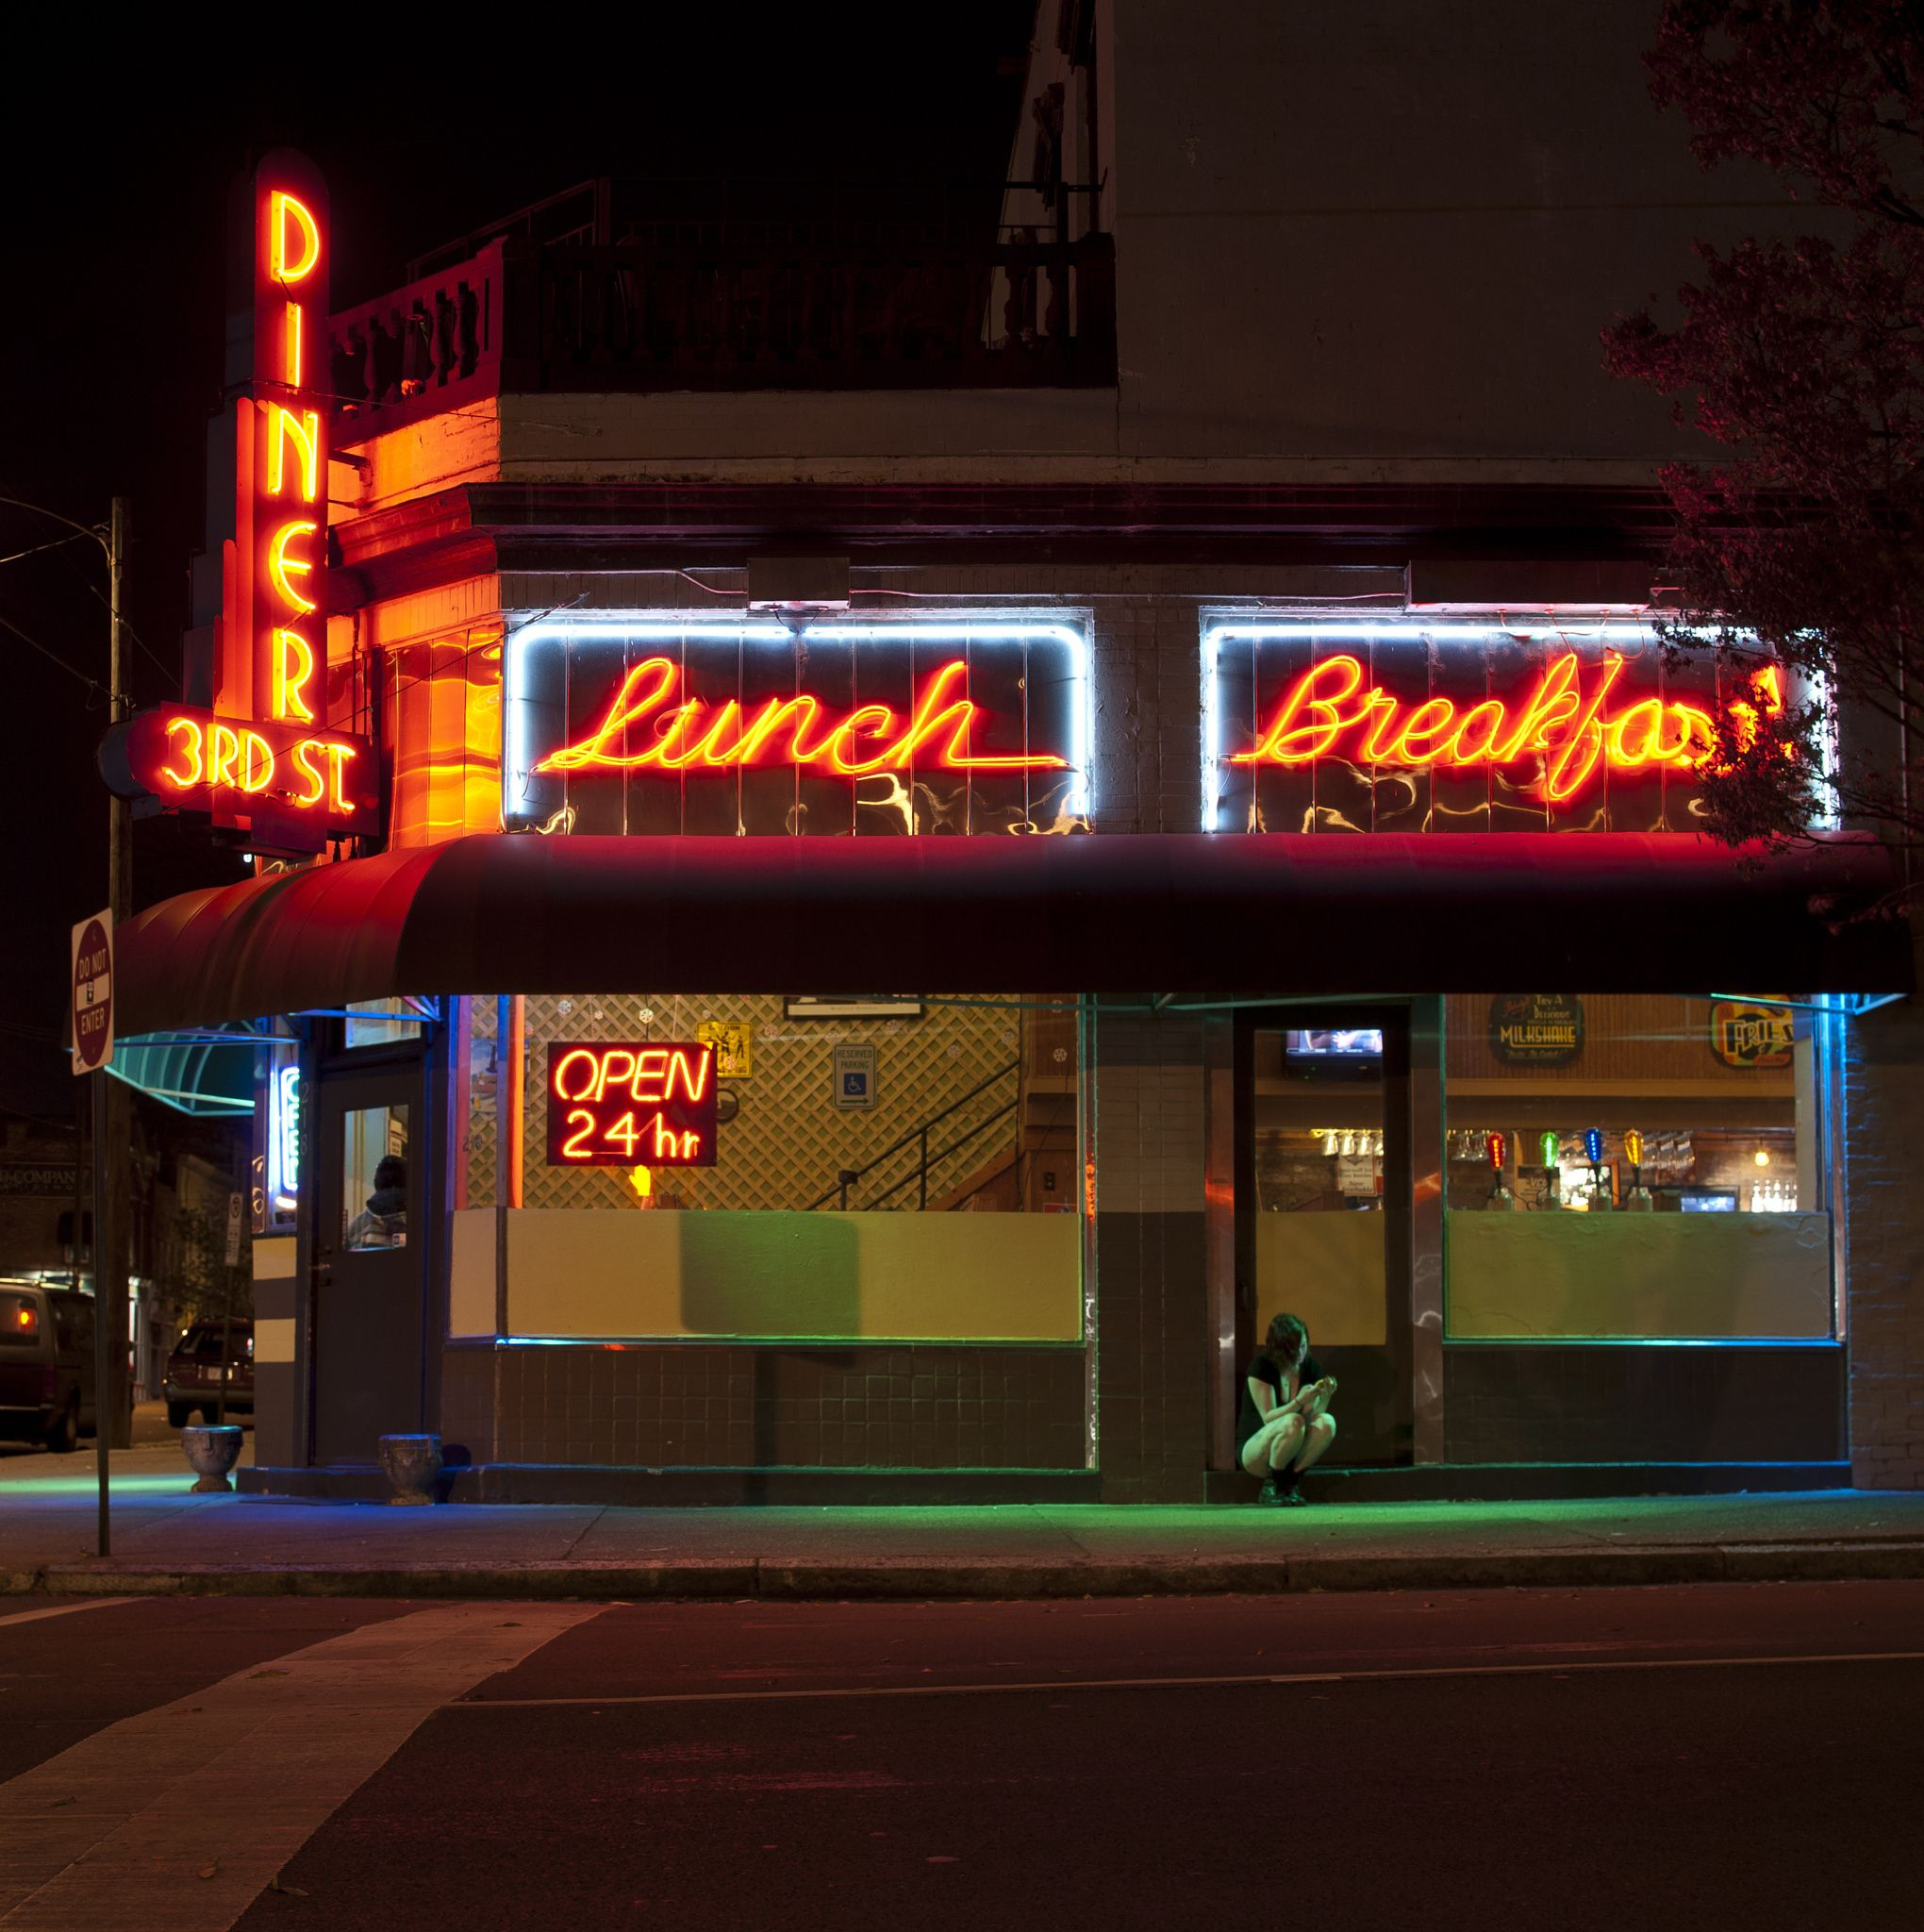 3rd Street Diner Late Night In Richmond Virginia Beautiful Building From The 1920 S